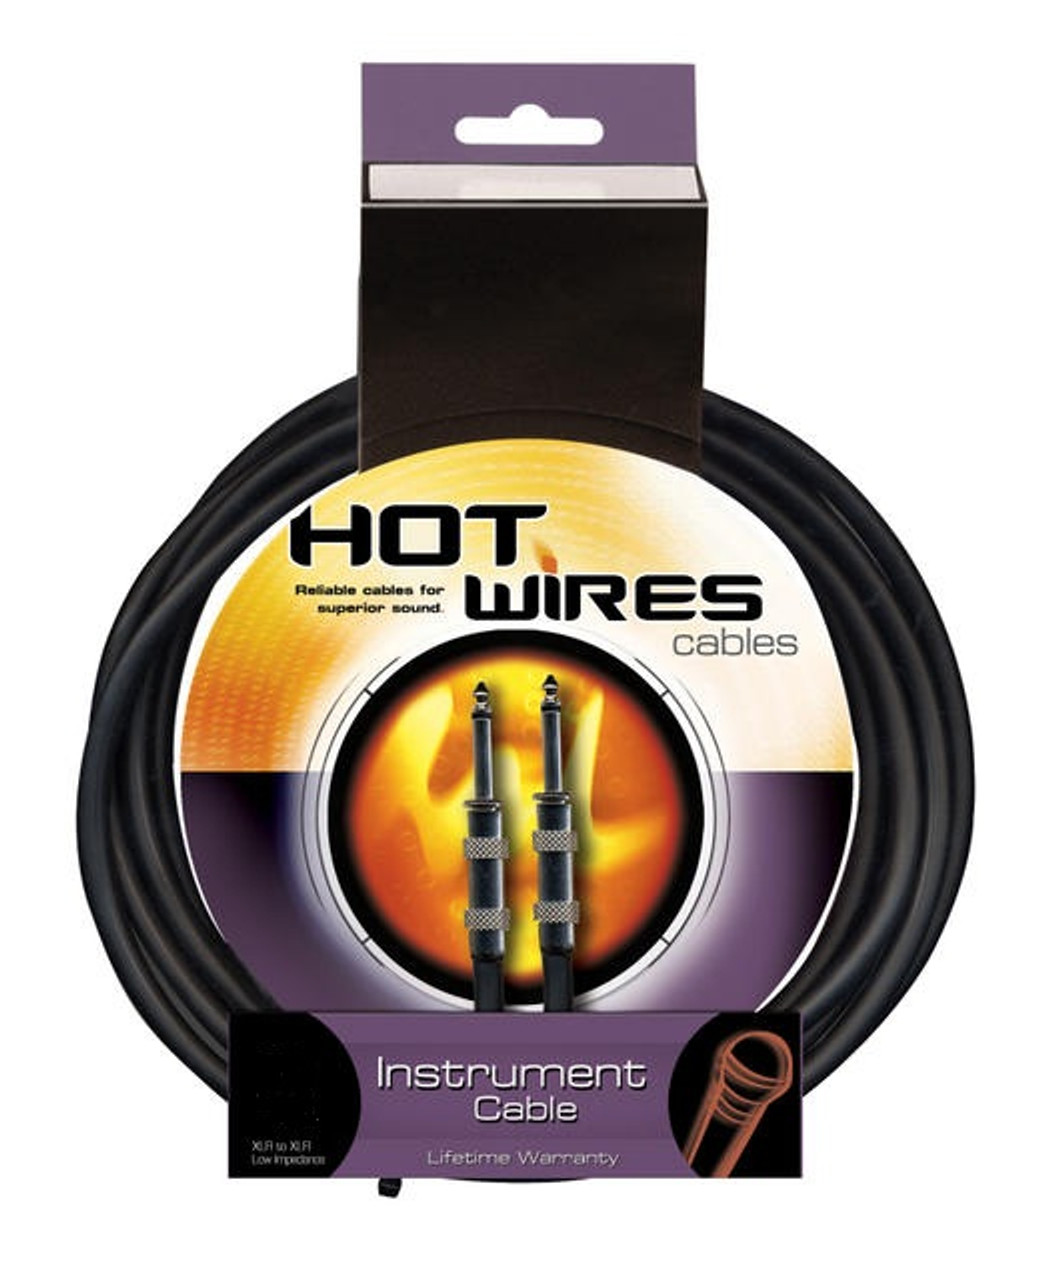 Hot Wires QTR to QTR Instrument Cable - 20 Feet